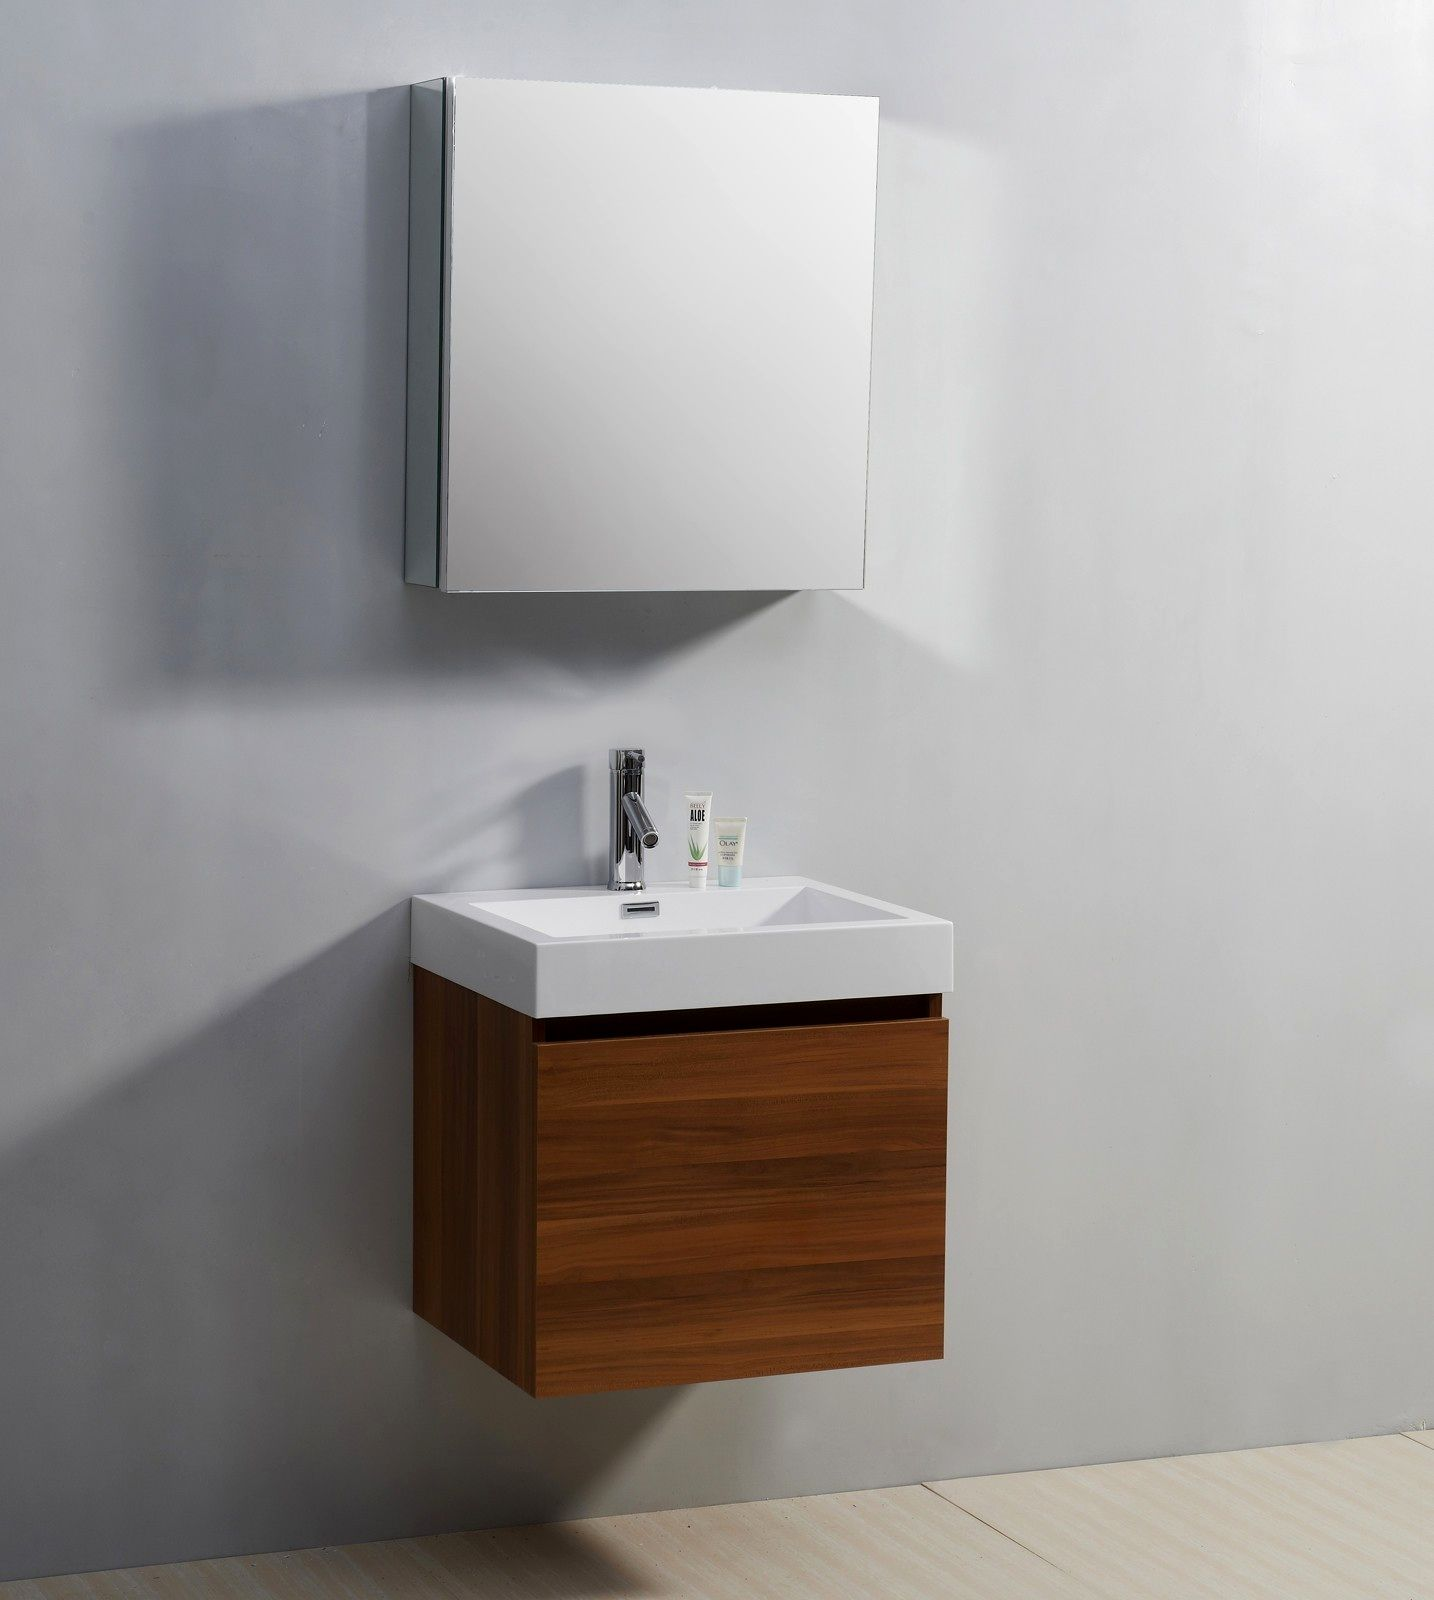 lovely lowes bathroom vanity with sink photograph-Luxury Lowes Bathroom Vanity with Sink Online